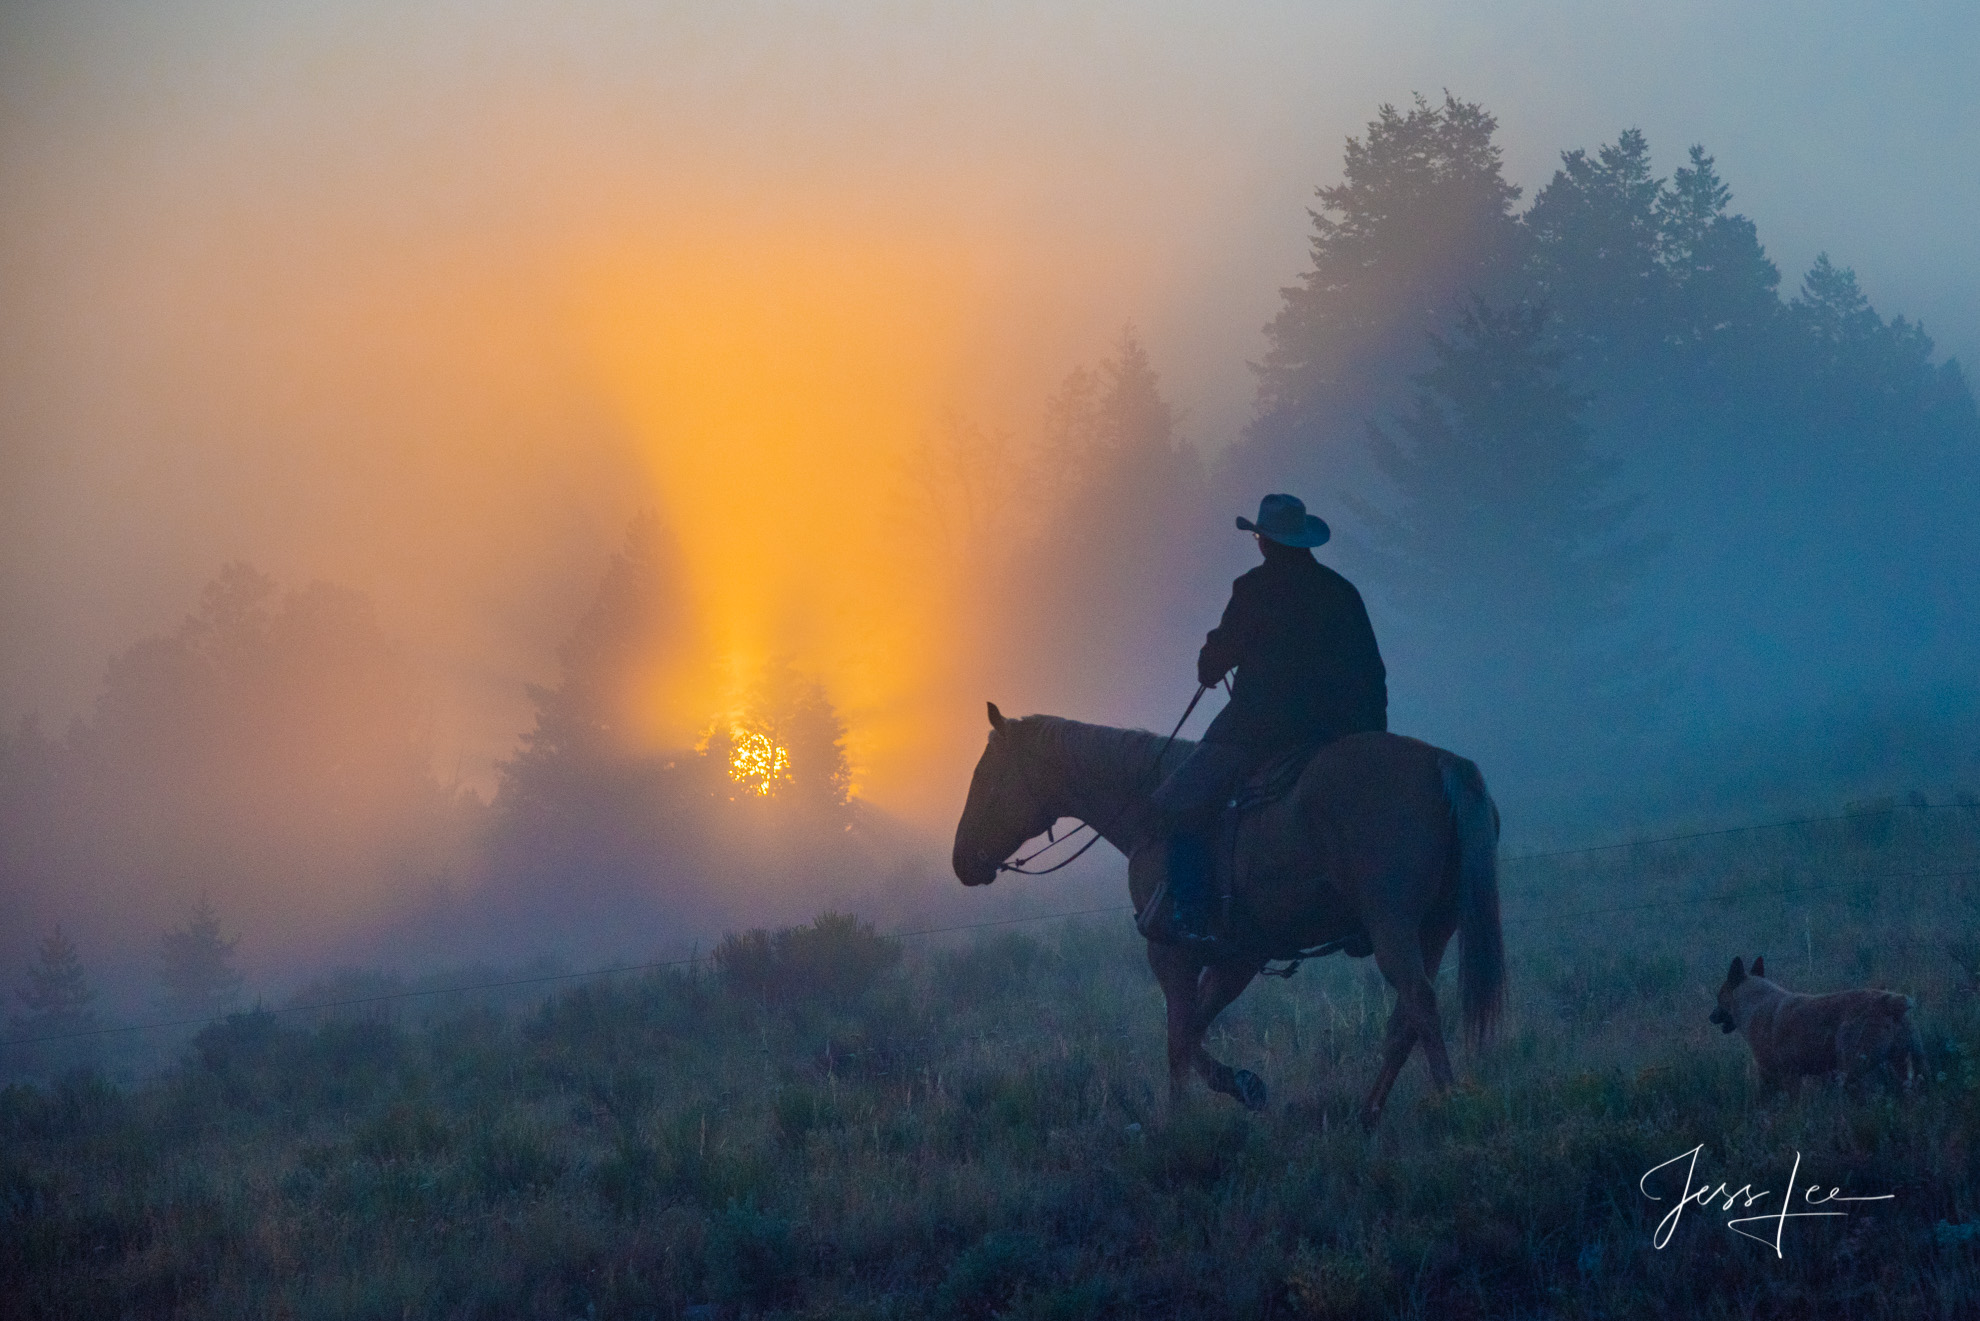 cowboy, western, Large format, quality, museum, fine art, print, jess lee, artist, photographer, limited edition, high quality, high resolution, beautiful, artistic, landscape, rare, landscape photogr, photo